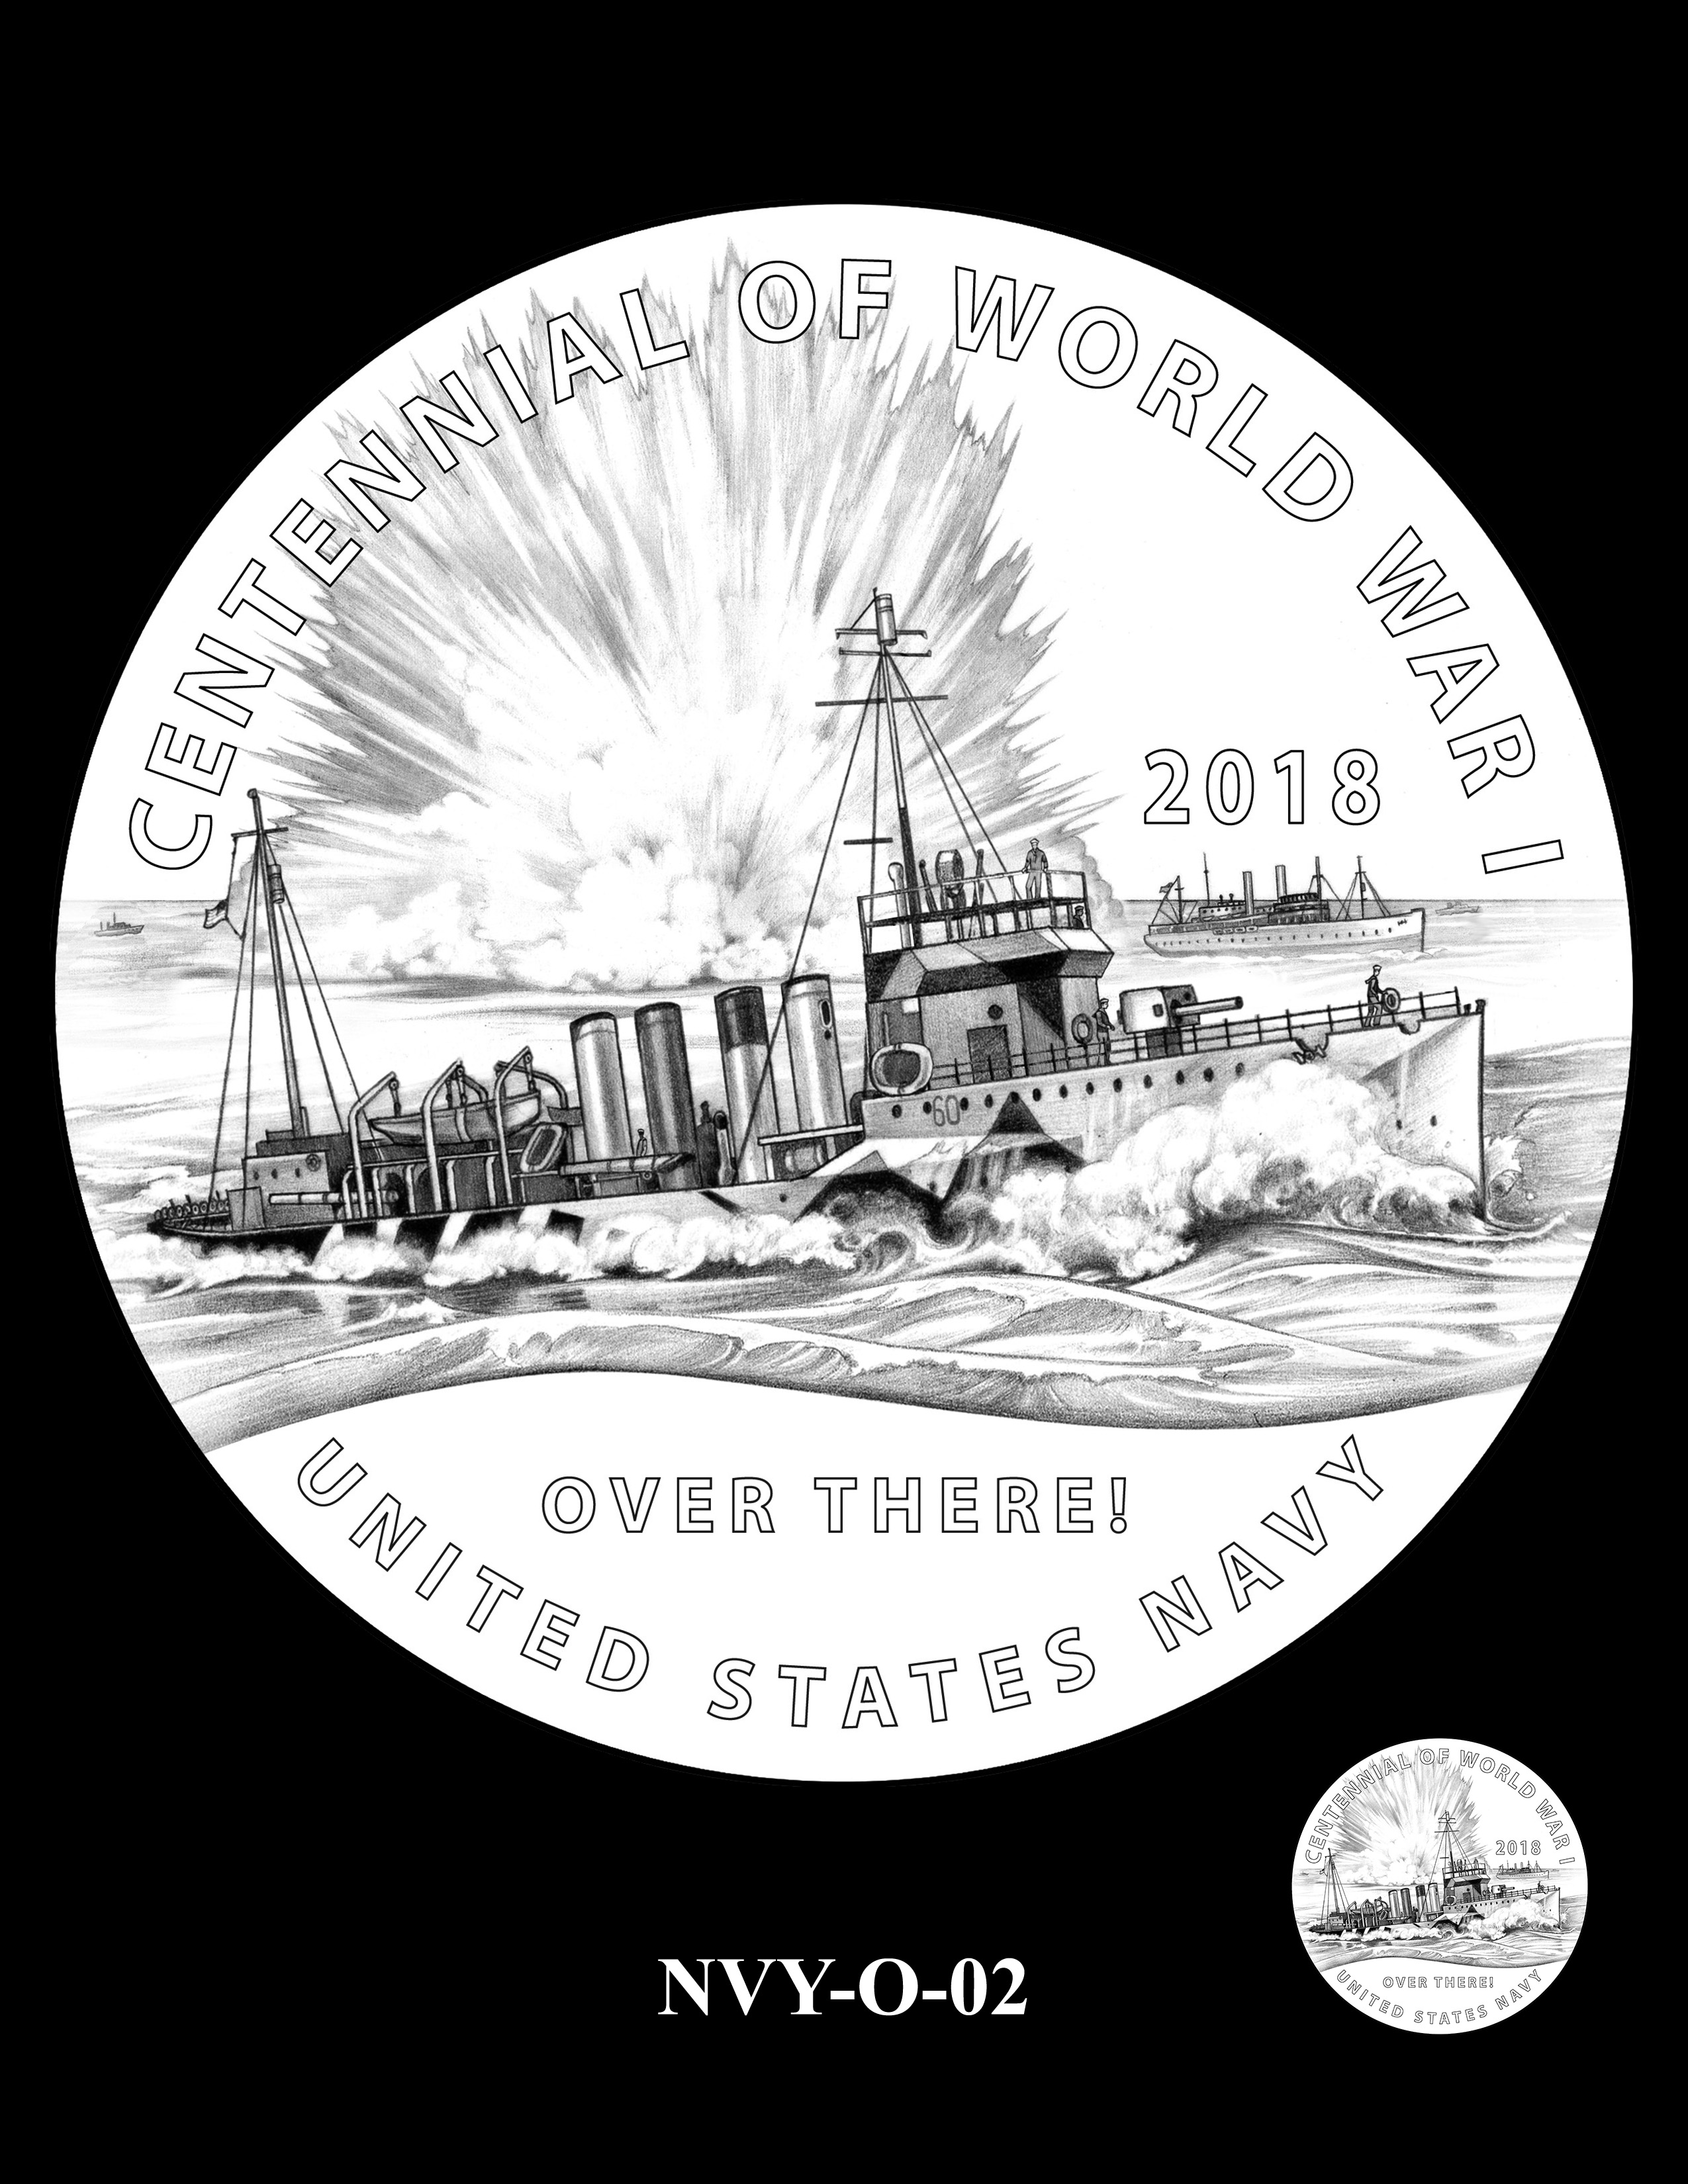 P1-NVY-O-02 -- 2018-World War I Silver Medals - Navy